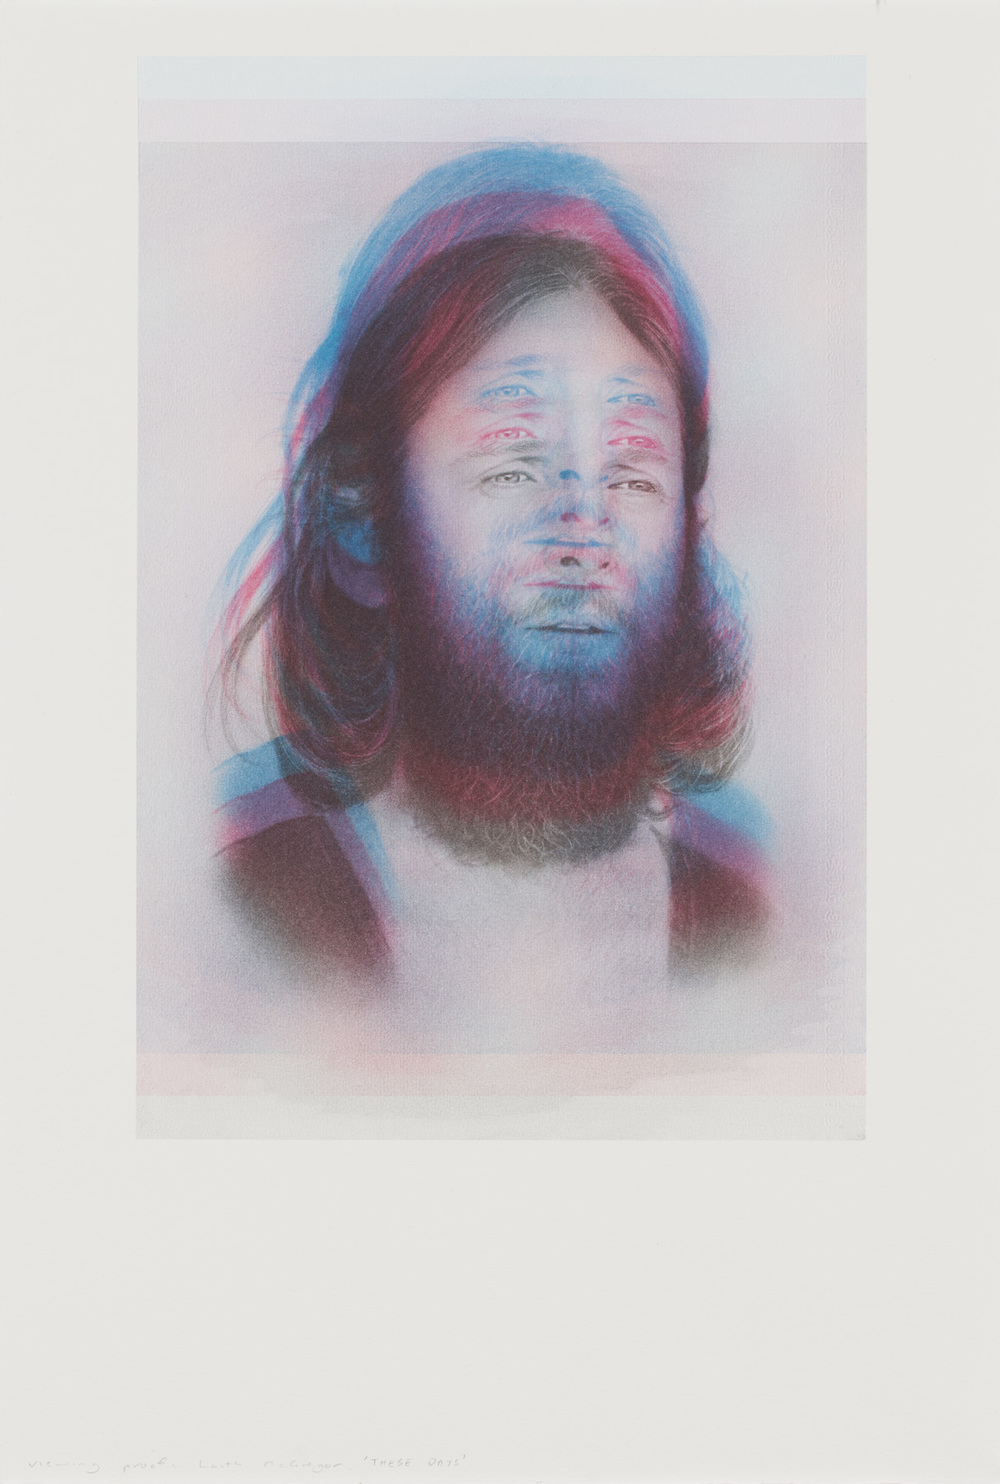 Laith McGregor,  These Days , lithograph, three photo-lithographic plates, printed in an edition of 20, plus proofs, Image size 410 x 275 mm, paper size: 560 x 380 mm